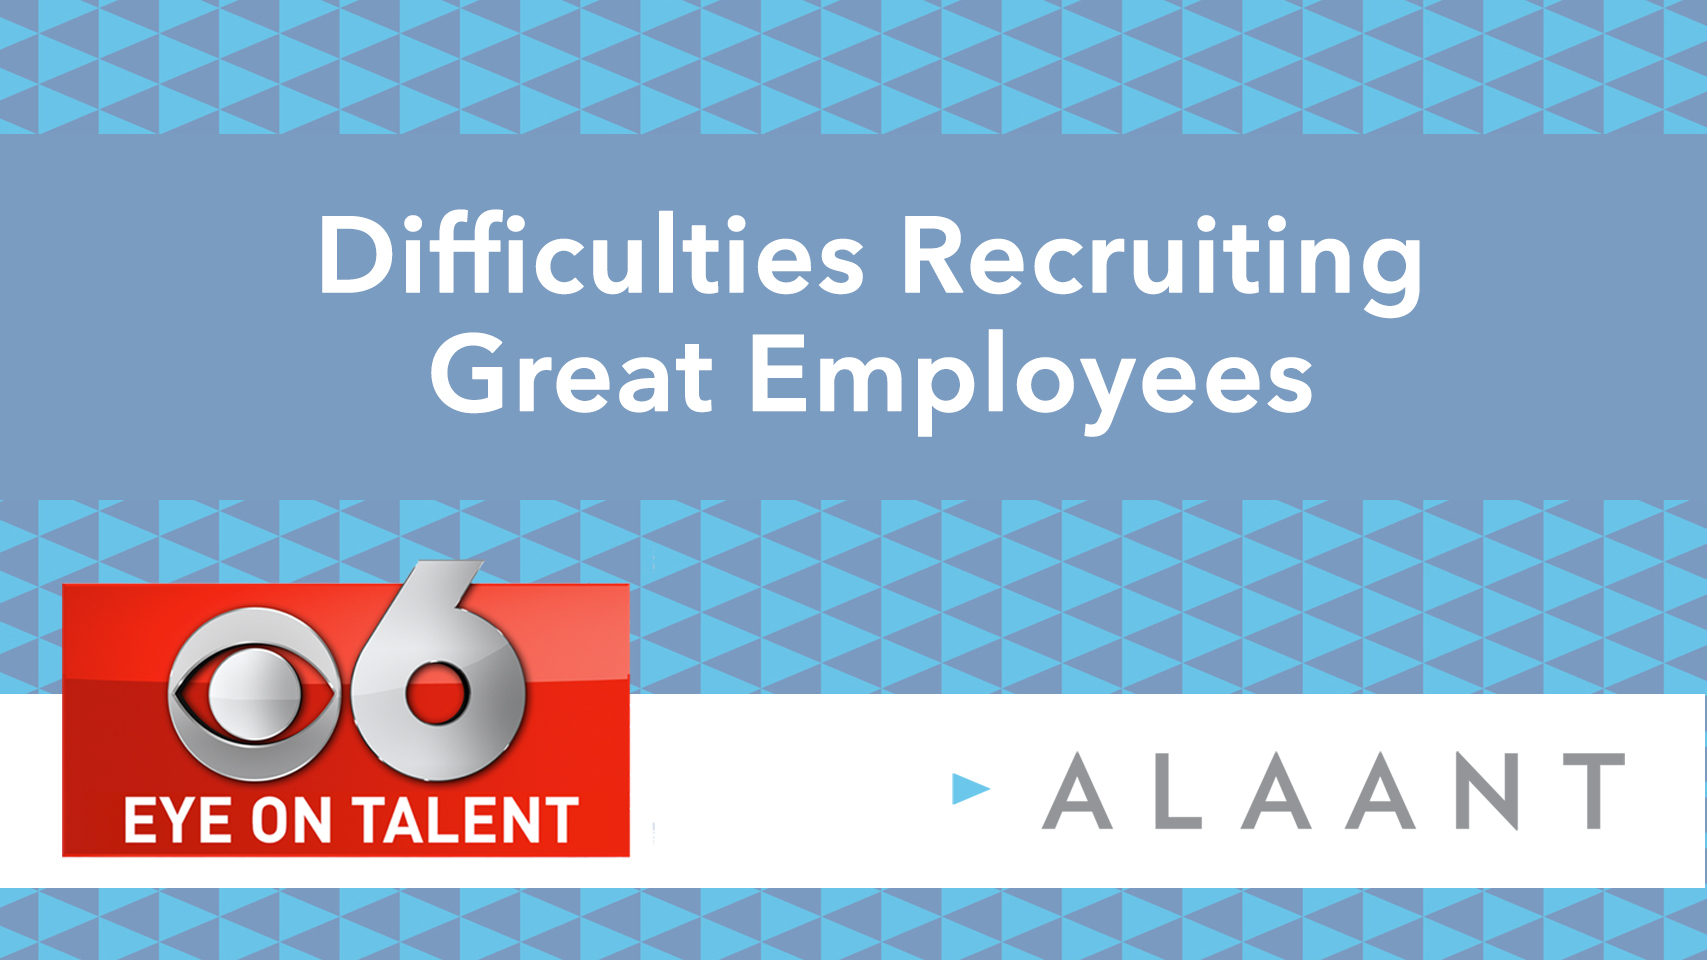 Eye on Talent: Difficulties Recruiting Great Employees